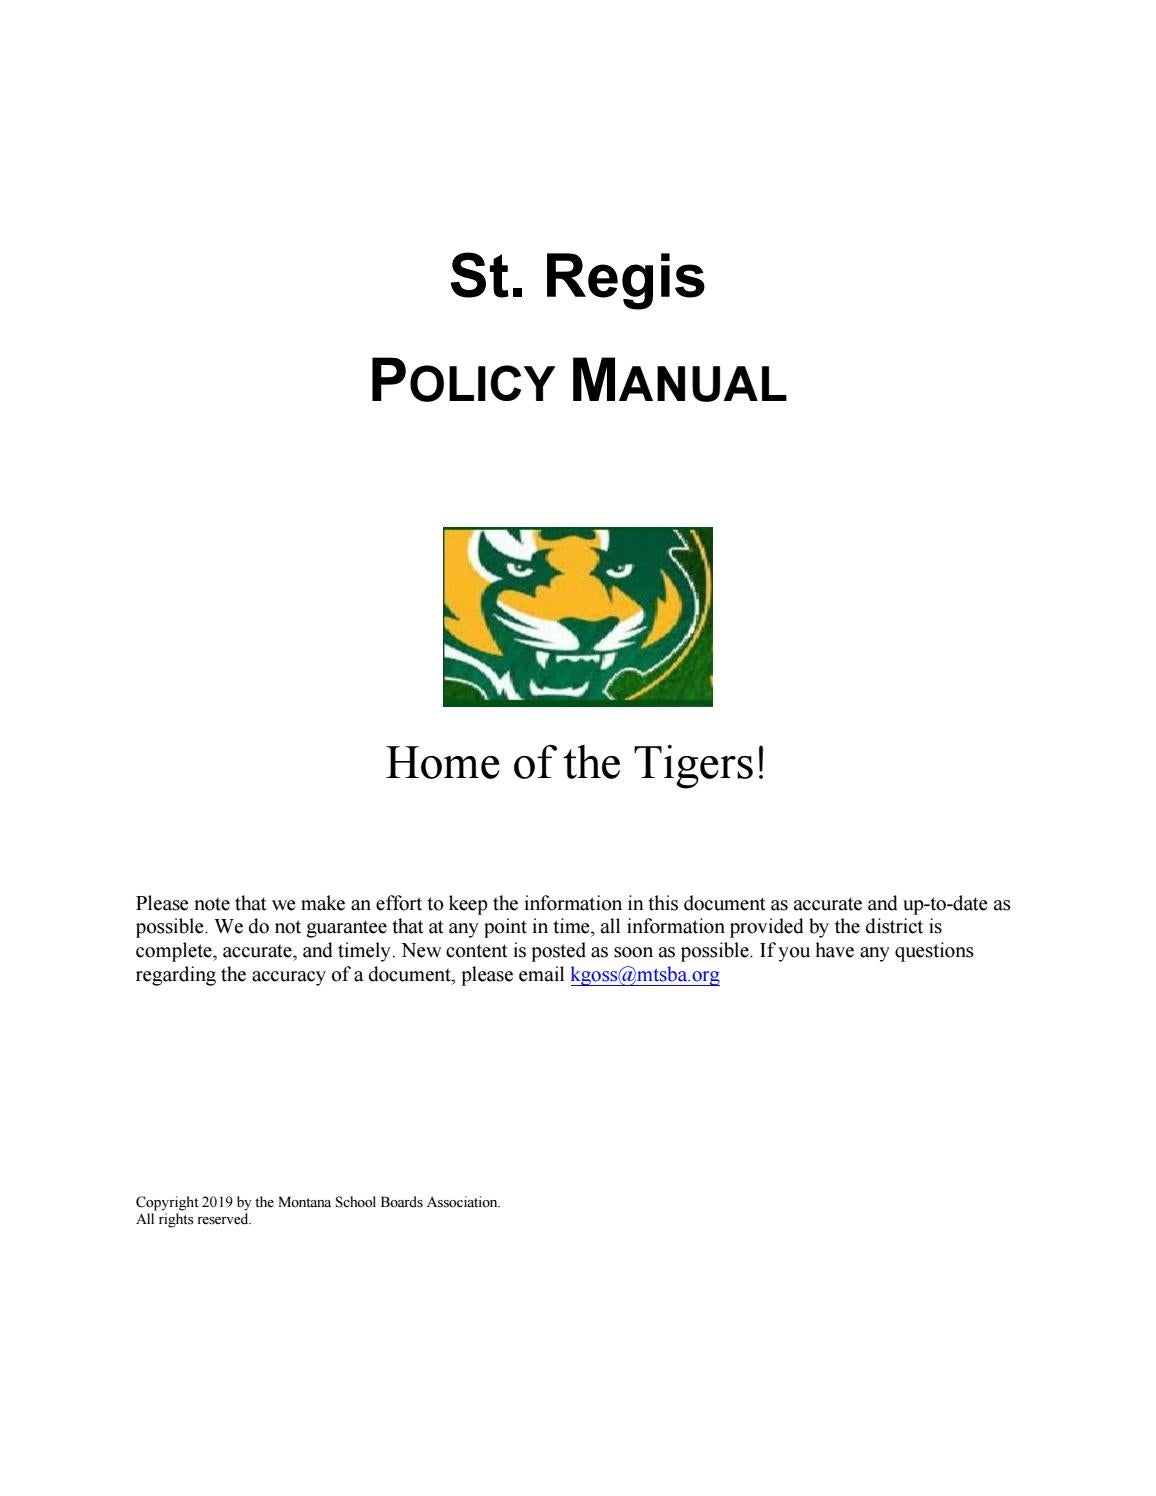 St  Regis Public Schools Policy Manual by Montana School Boards